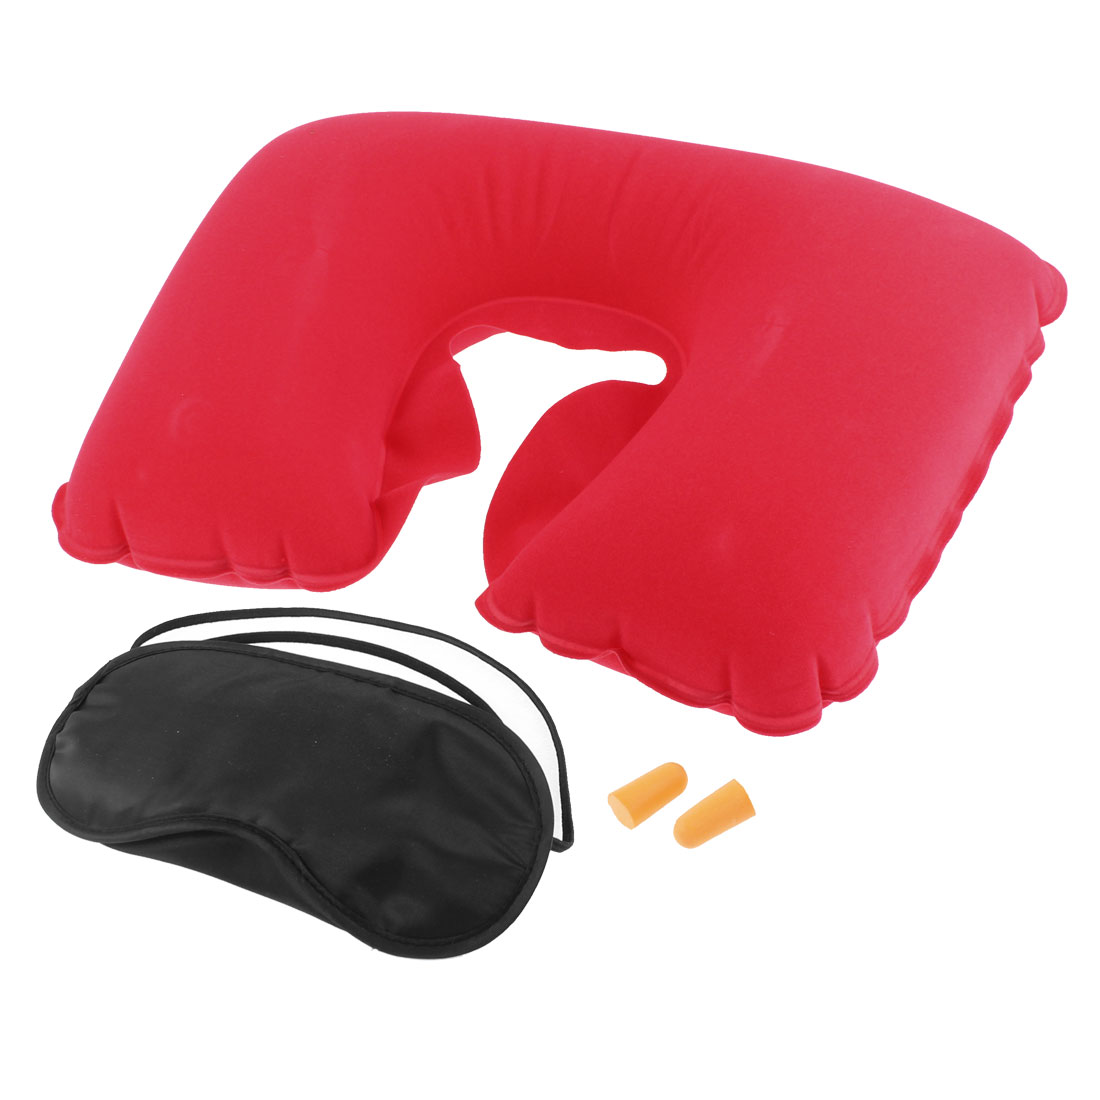 Travel Sleeping Inflatable U Shaped Neck Pillow Eye Mask Earplug Red 3 in 1